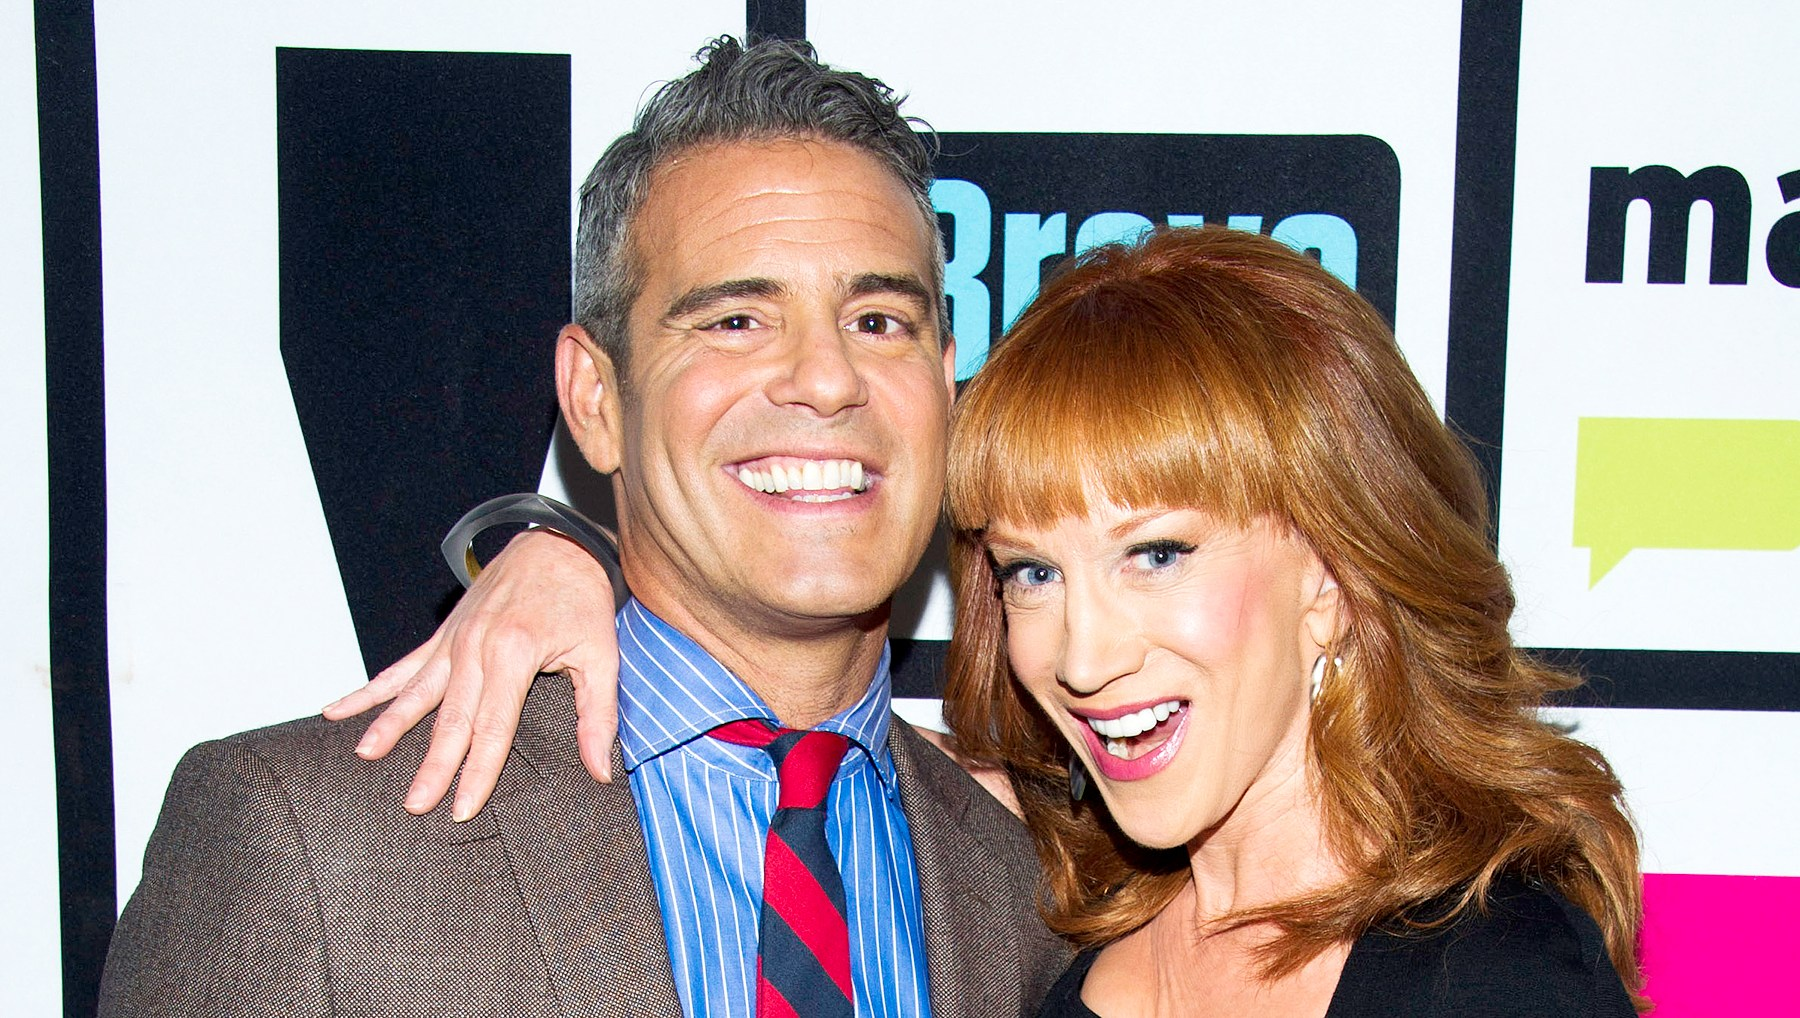 Andy Cohen and Kathy Griffin feud